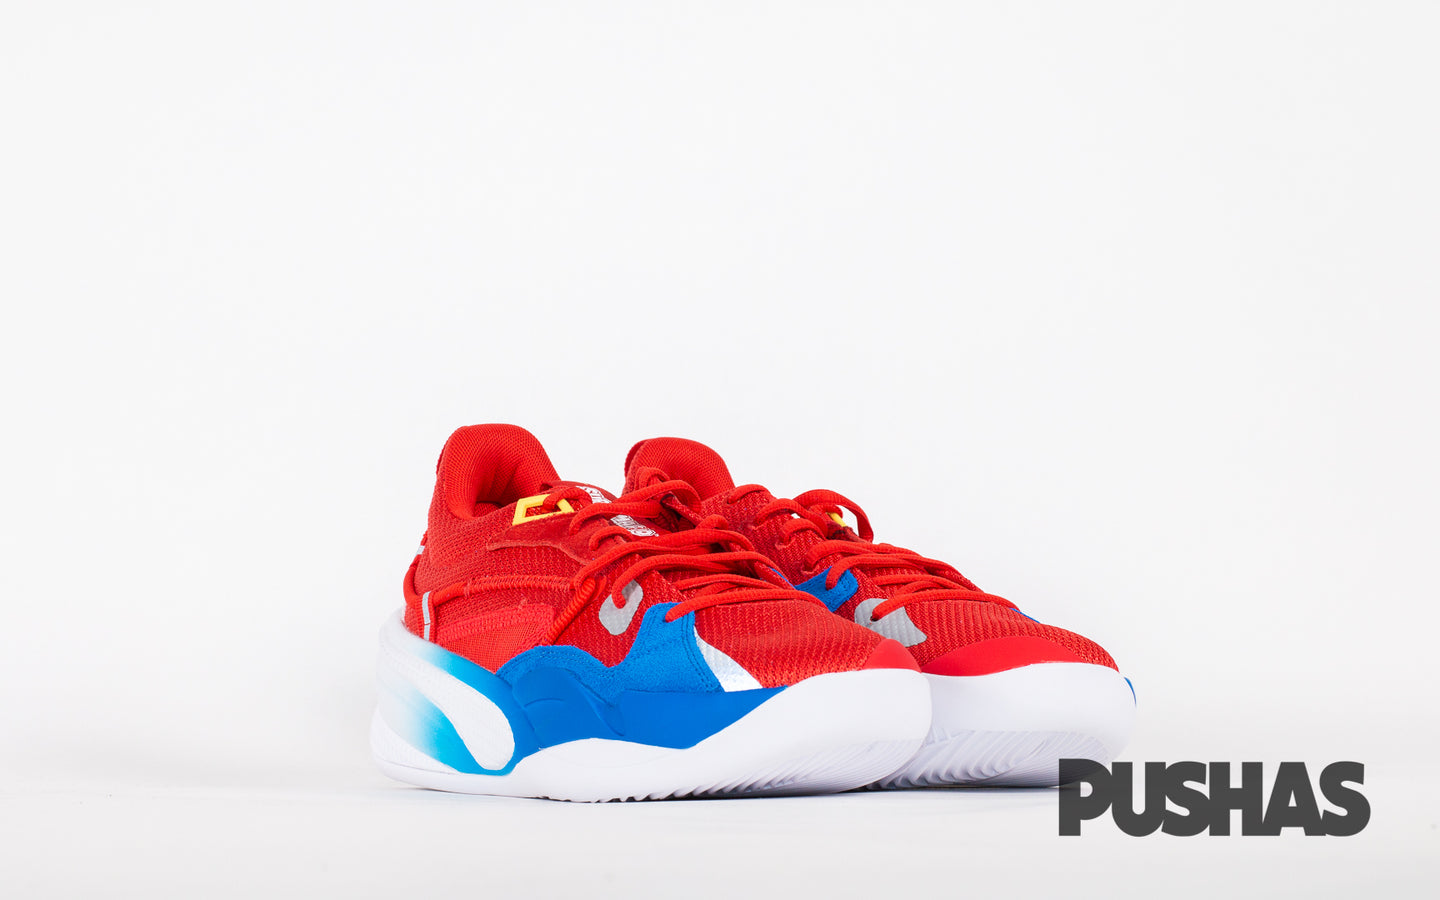 pushas-puma-RS-Dreamer-Super-Mario-64